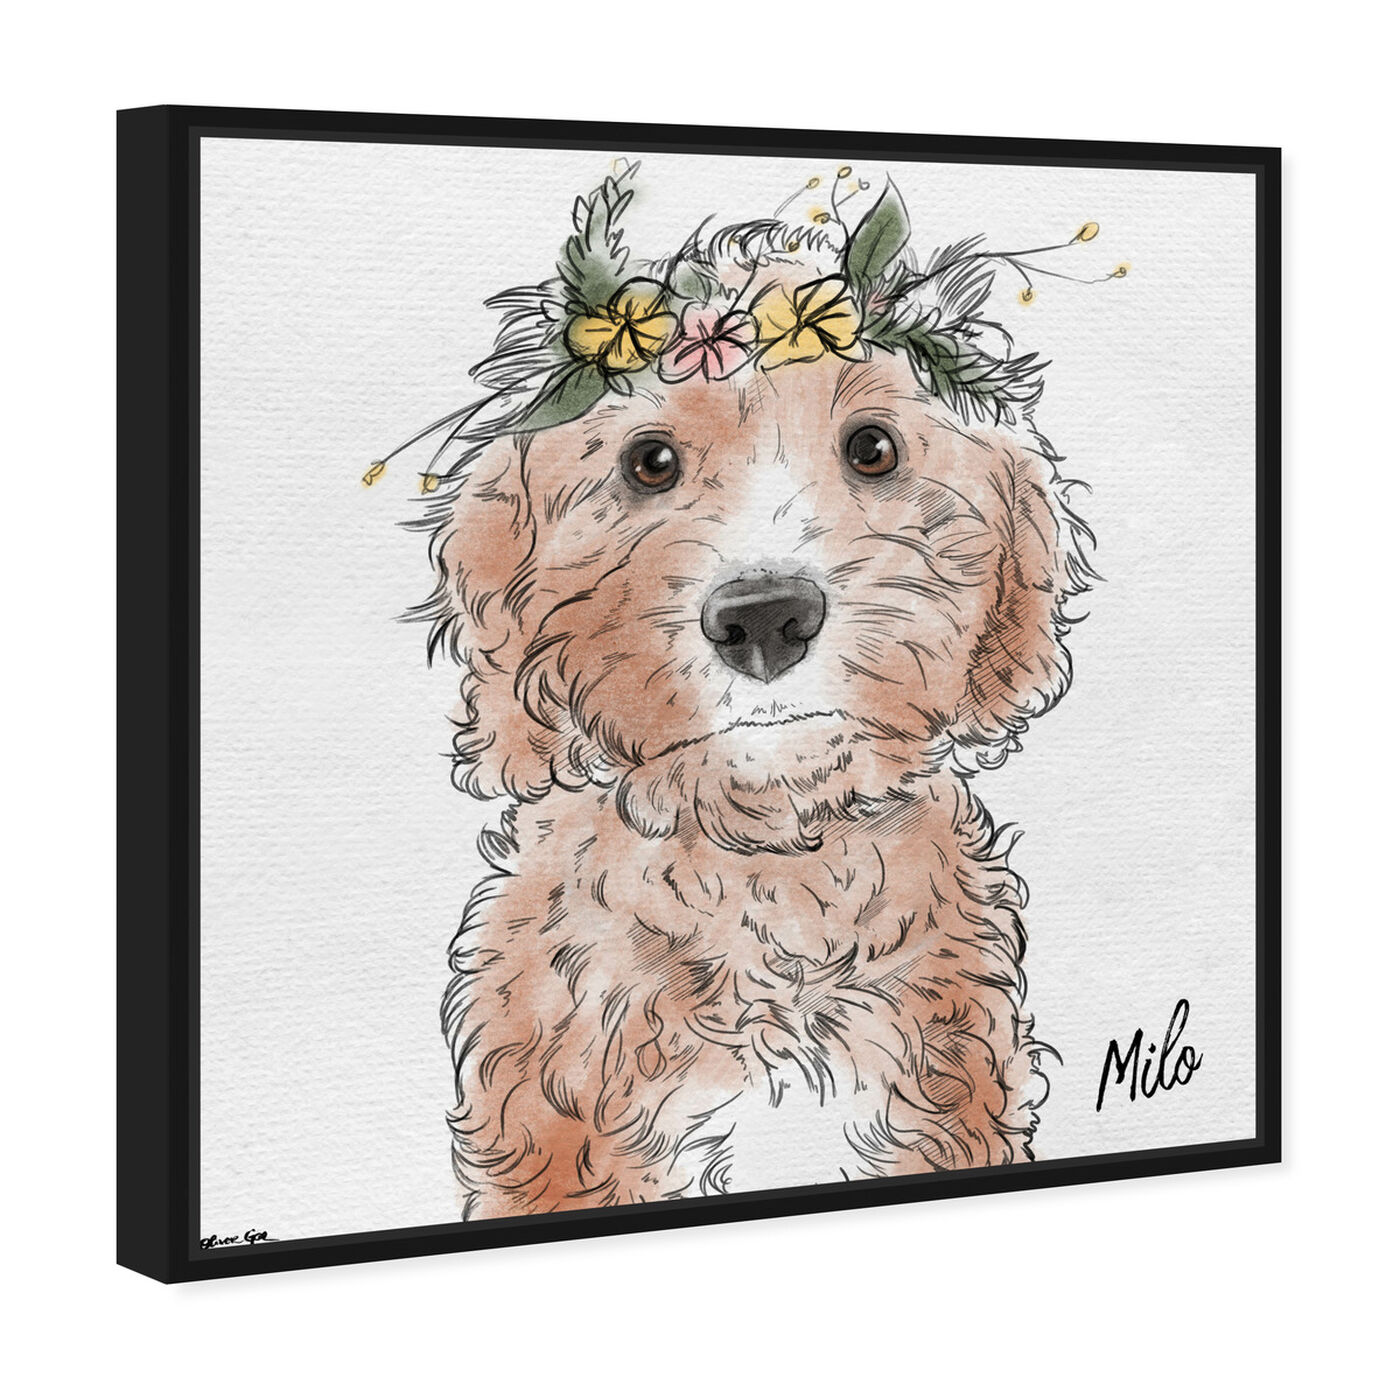 Angled view of Flower Crown Pet featuring animals and dogs and puppies art.